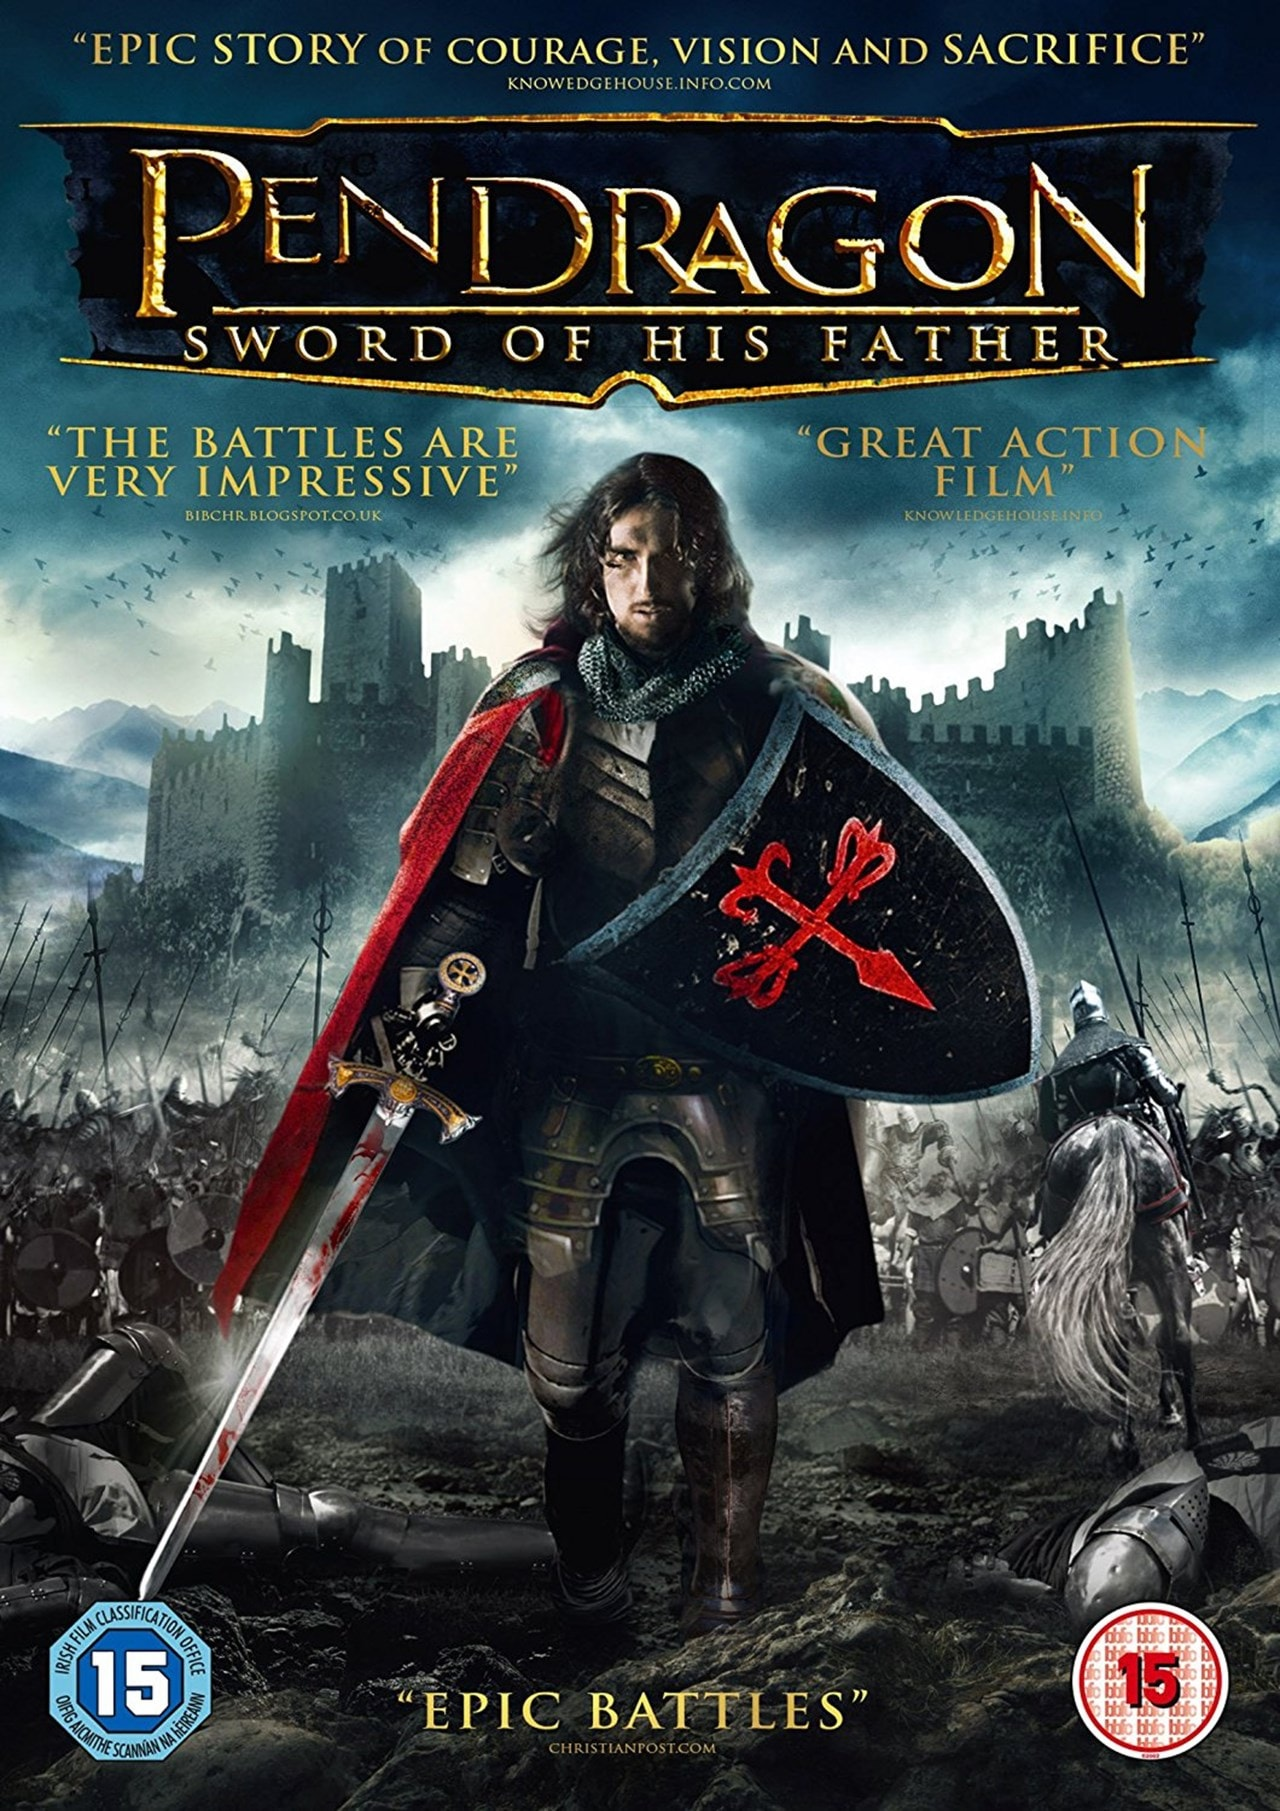 Pendragon - Sword of His Father - 1